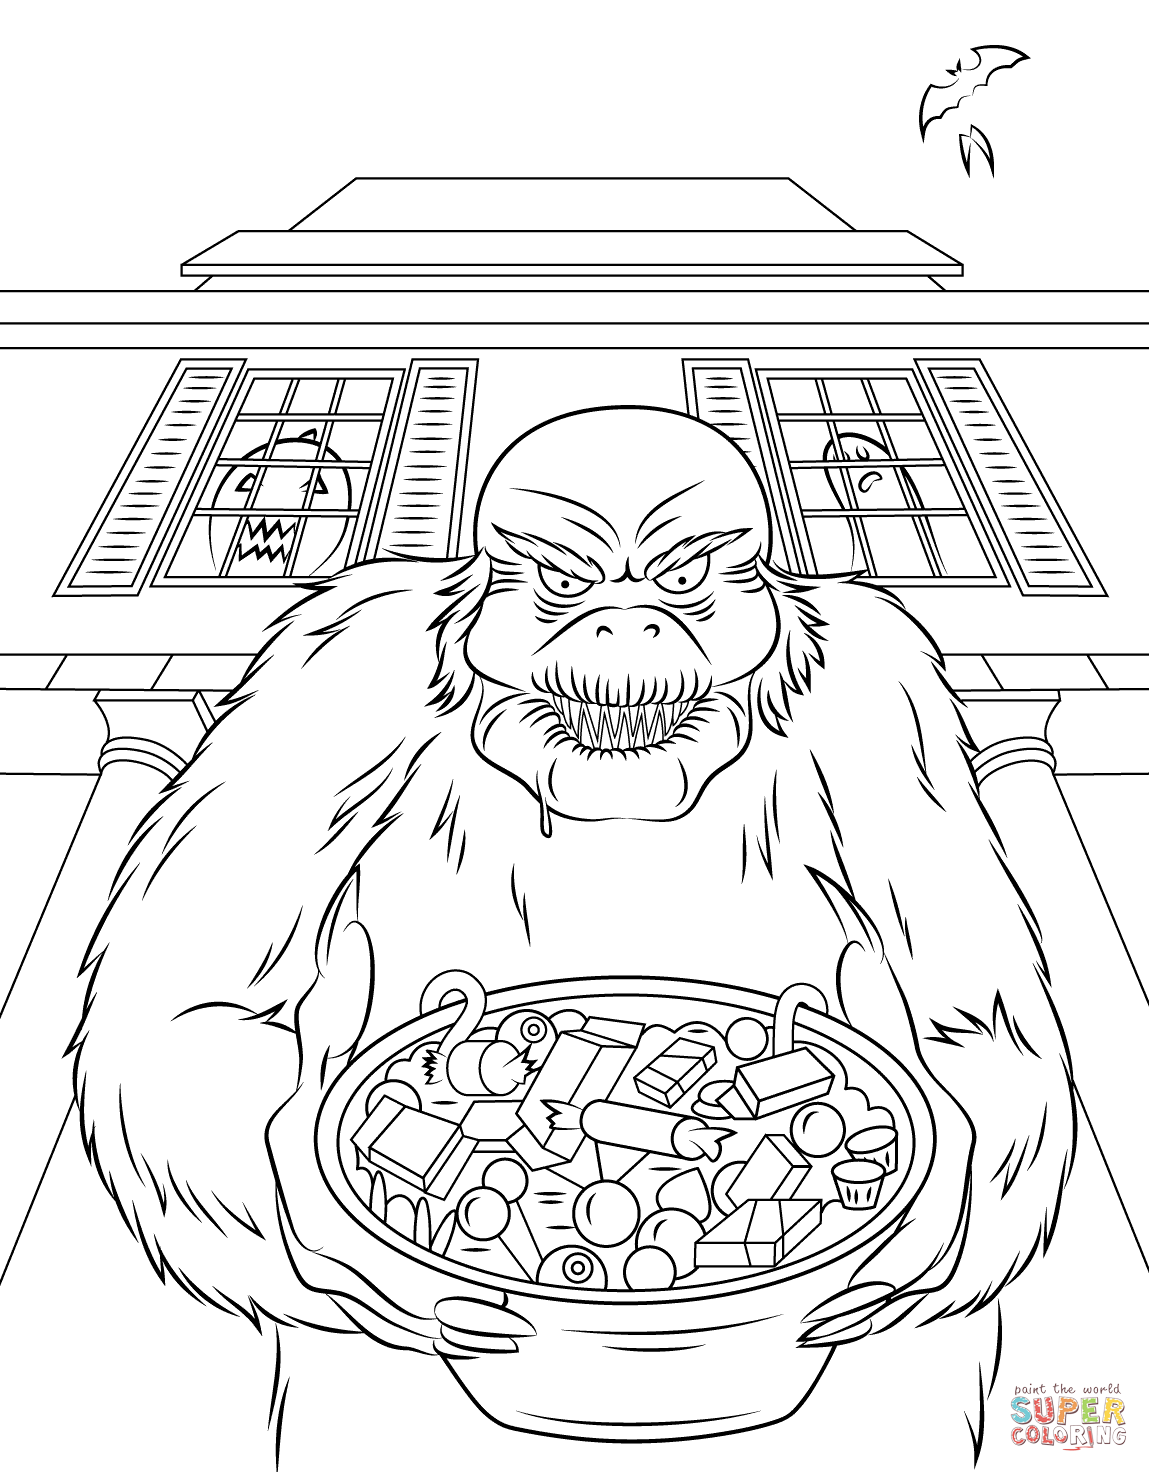 Goosebumps Coloring Pages Coloring Home Goosebumps Coloring Pages